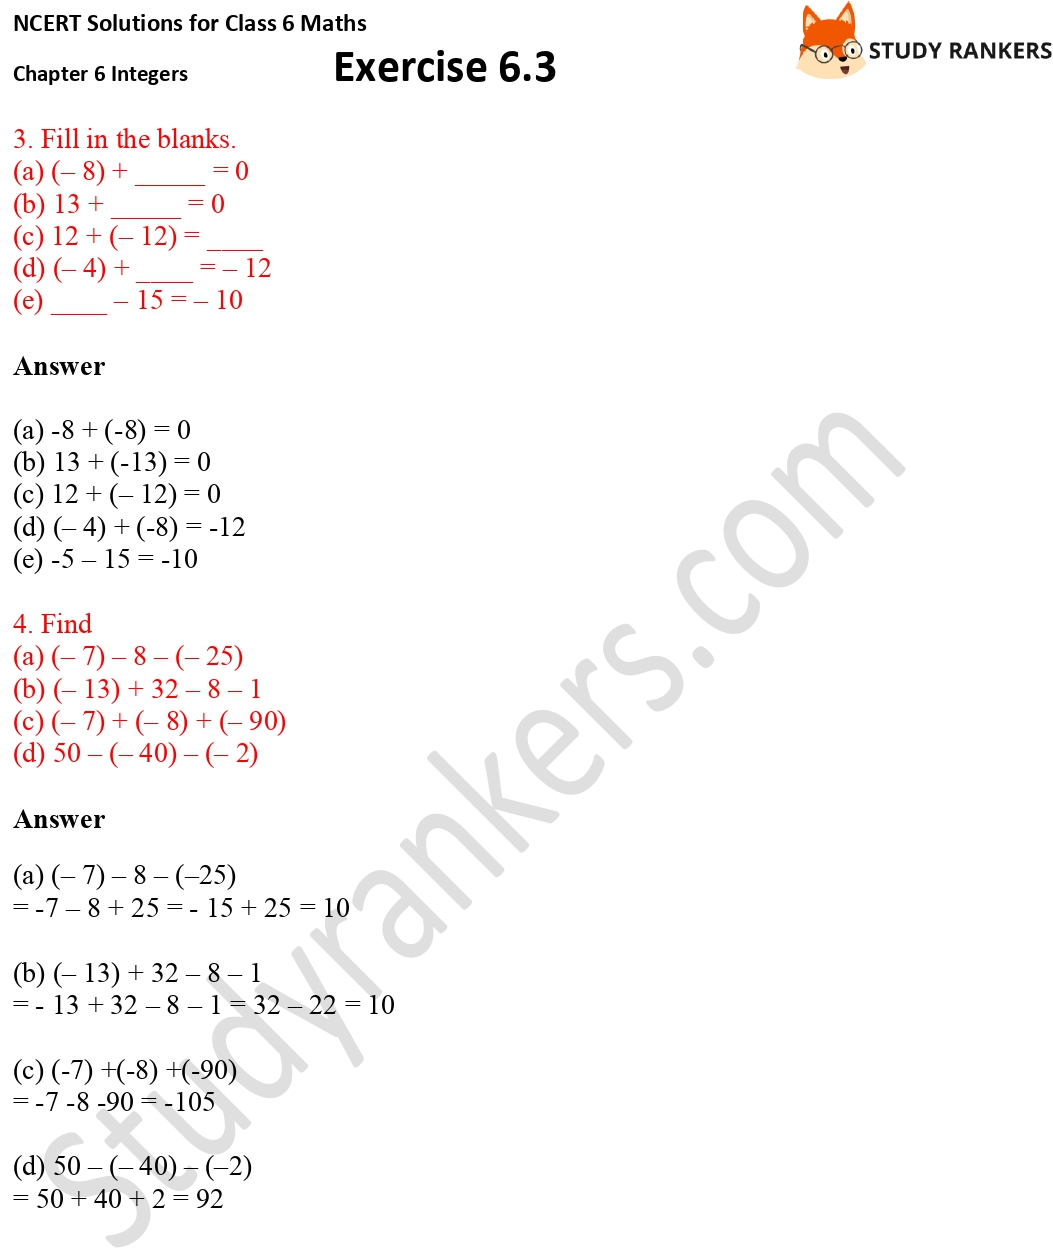 NCERT Solutions for Class 6 Maths Chapter 6 Integers Exercise 6.3 Part 2